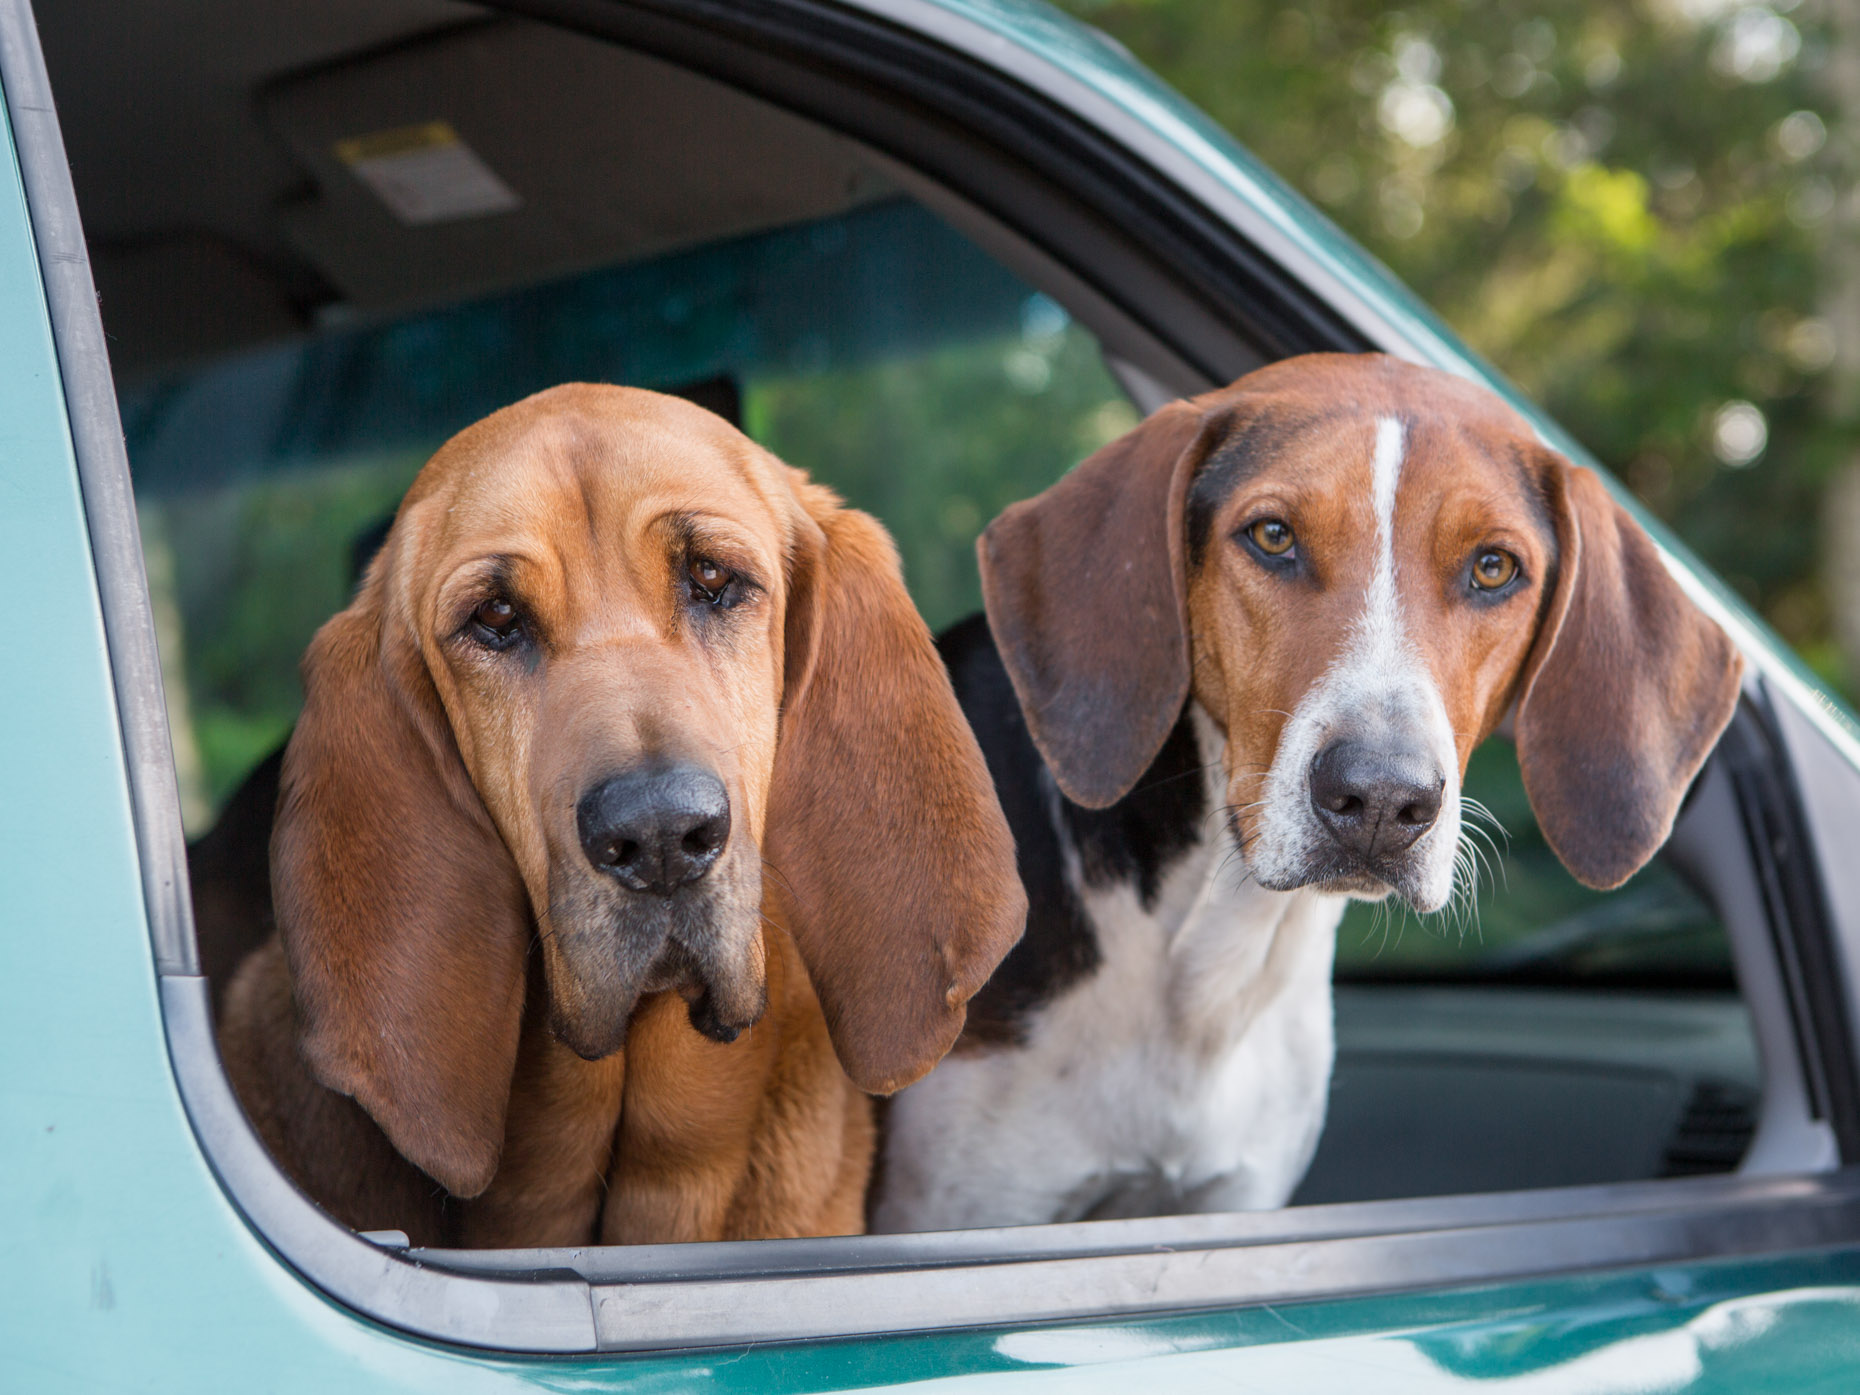 Dog Lifestyle Photography | Two Hounds in Car Window by Mark Rogers